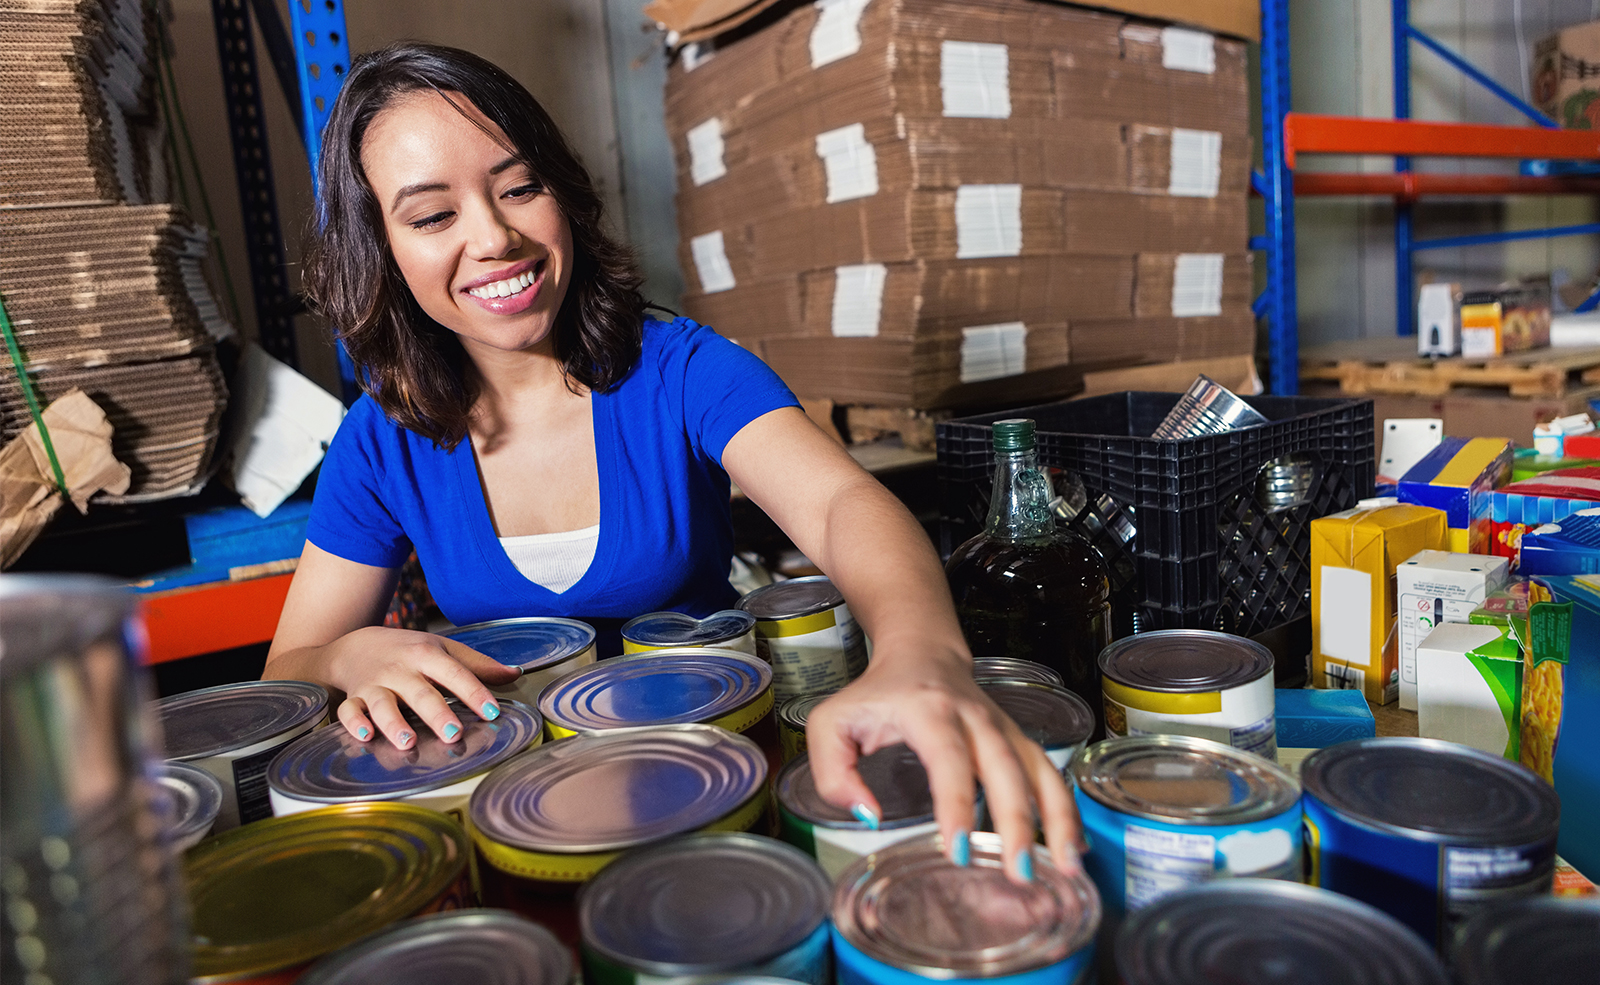 woman smiling with canned food